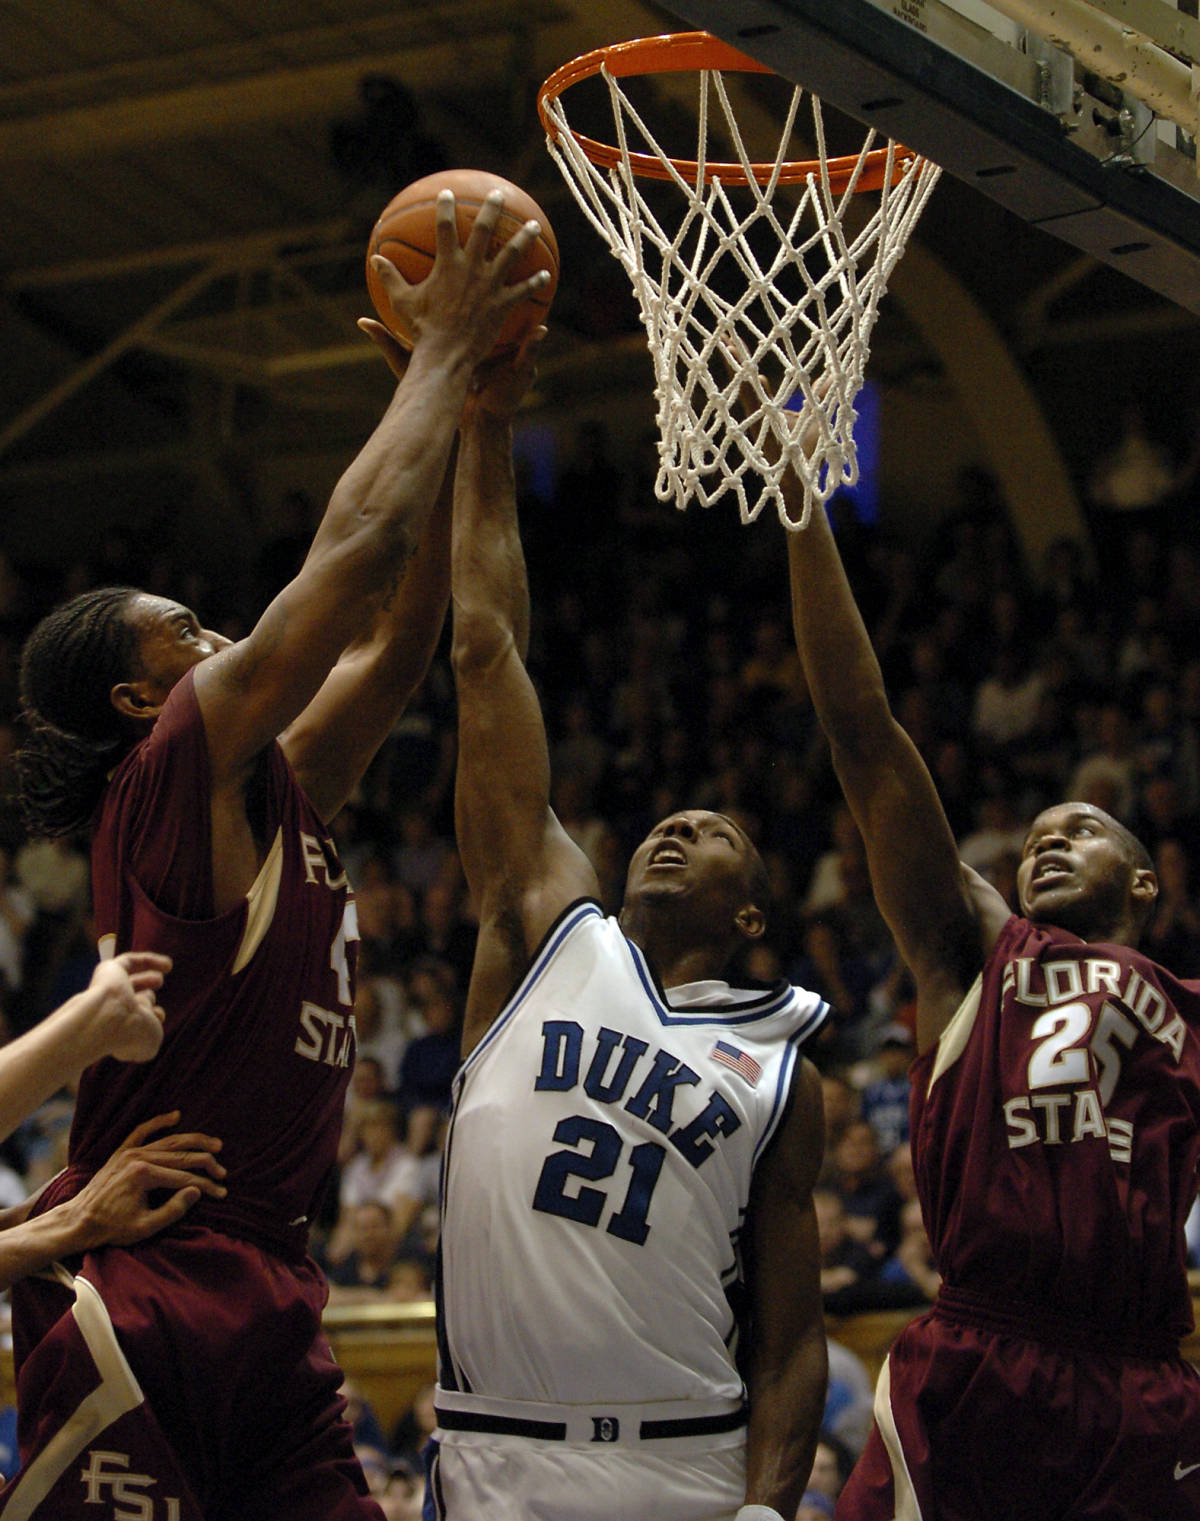 Florida State's Ryan Reid, left, controls a rebound over Jason Rich (25) Duke's DeMarcus Nelson (21) in the second half of a basketball game in Durham, N.C., on Sunday, Feb. 4, 2007. Florida State upset Duke 68-67. (AP Photo/Sara D. Davis)